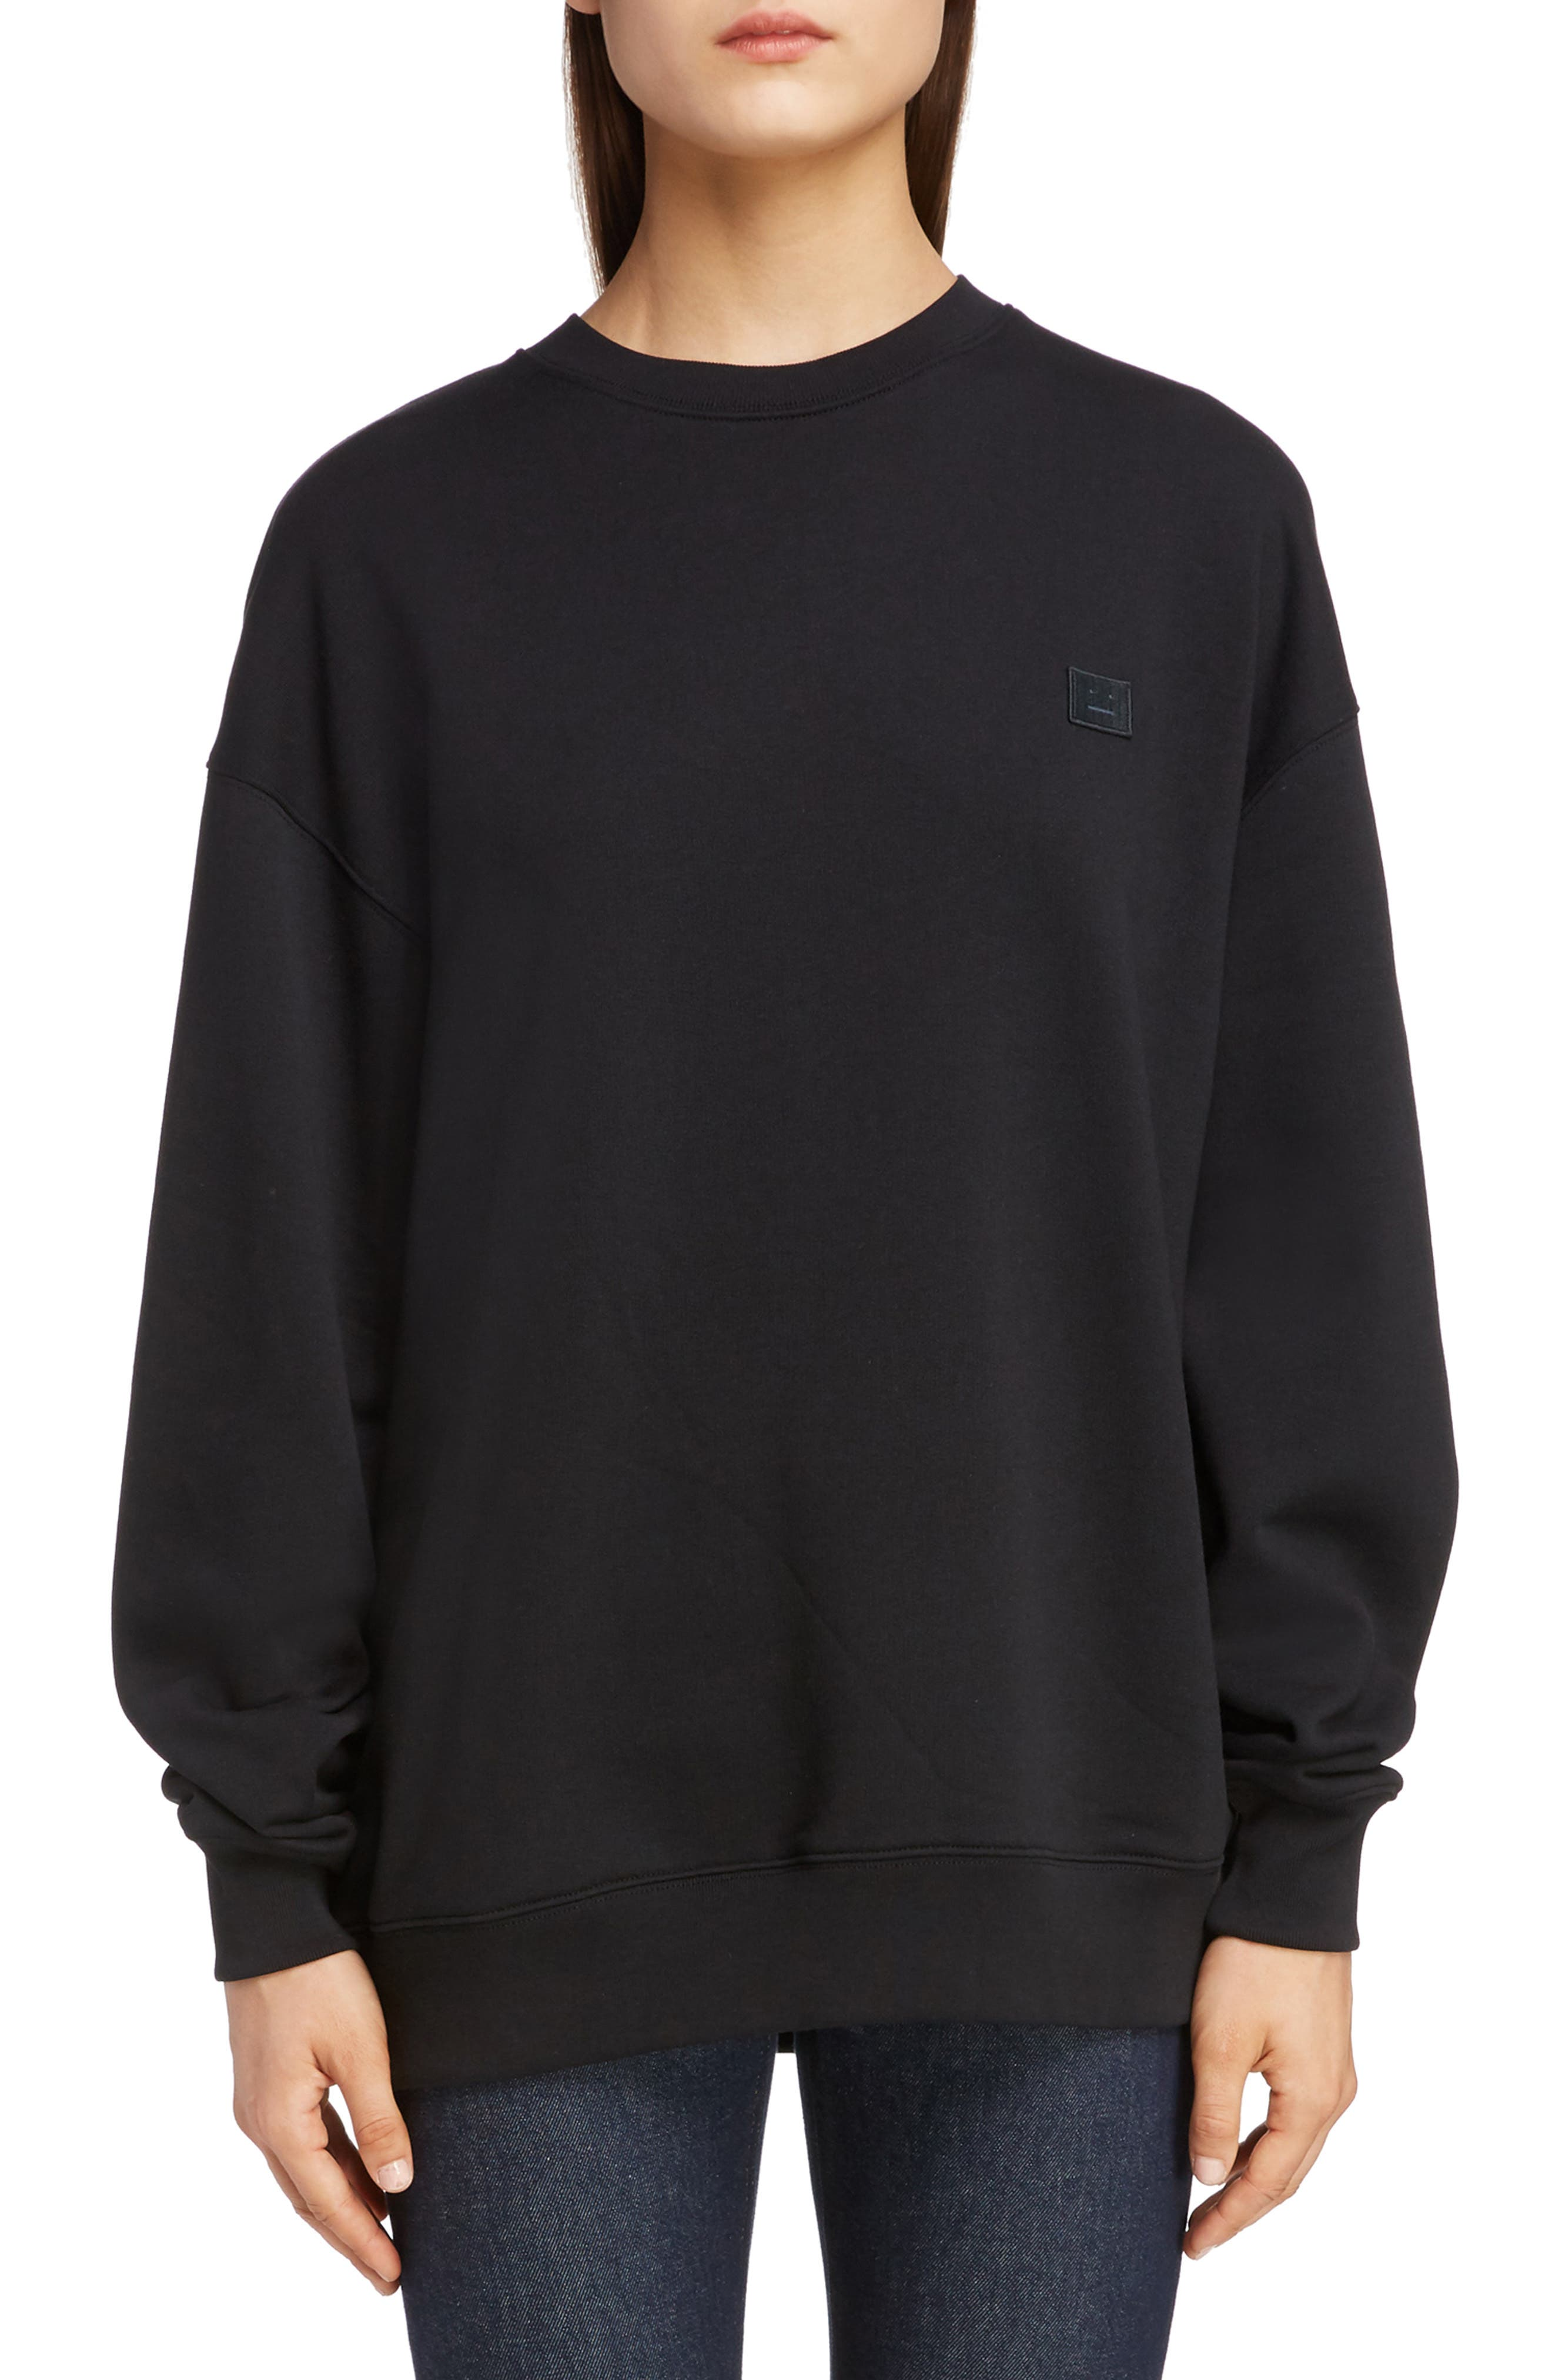 ACNE STUDIOS,                             Forba Face Sweatshirt,                             Main thumbnail 1, color,                             BLACK